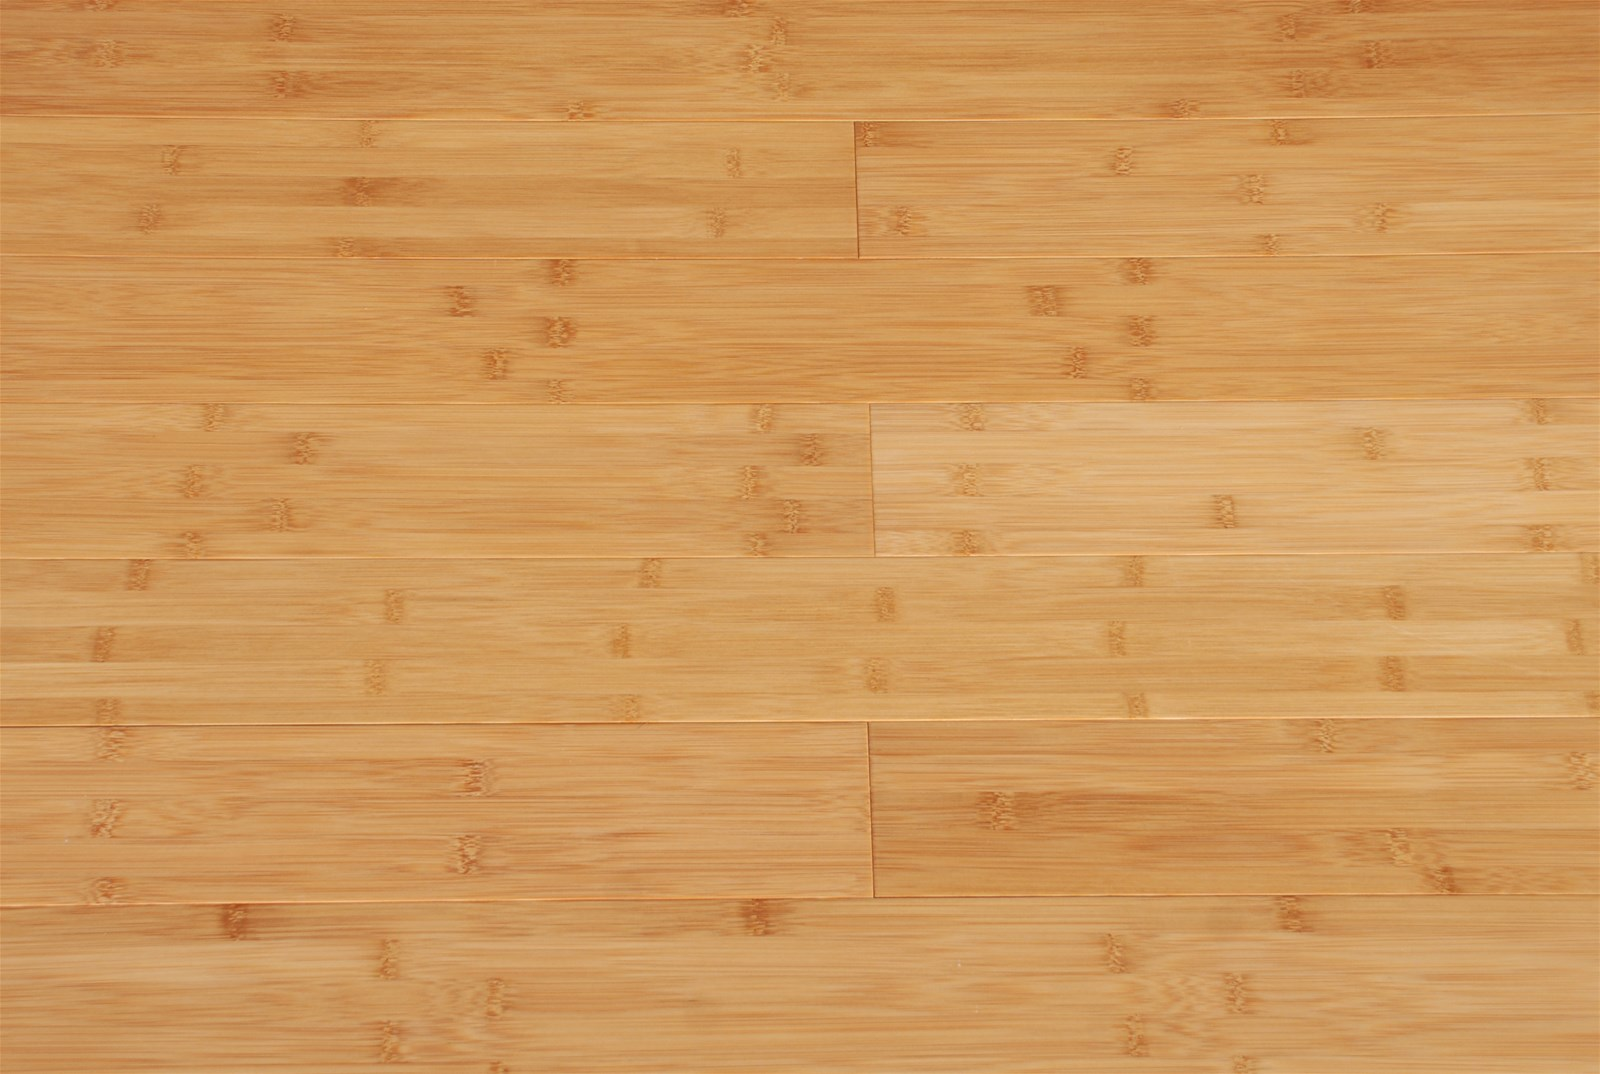 Regular Knot Antipollution bamboo flooring